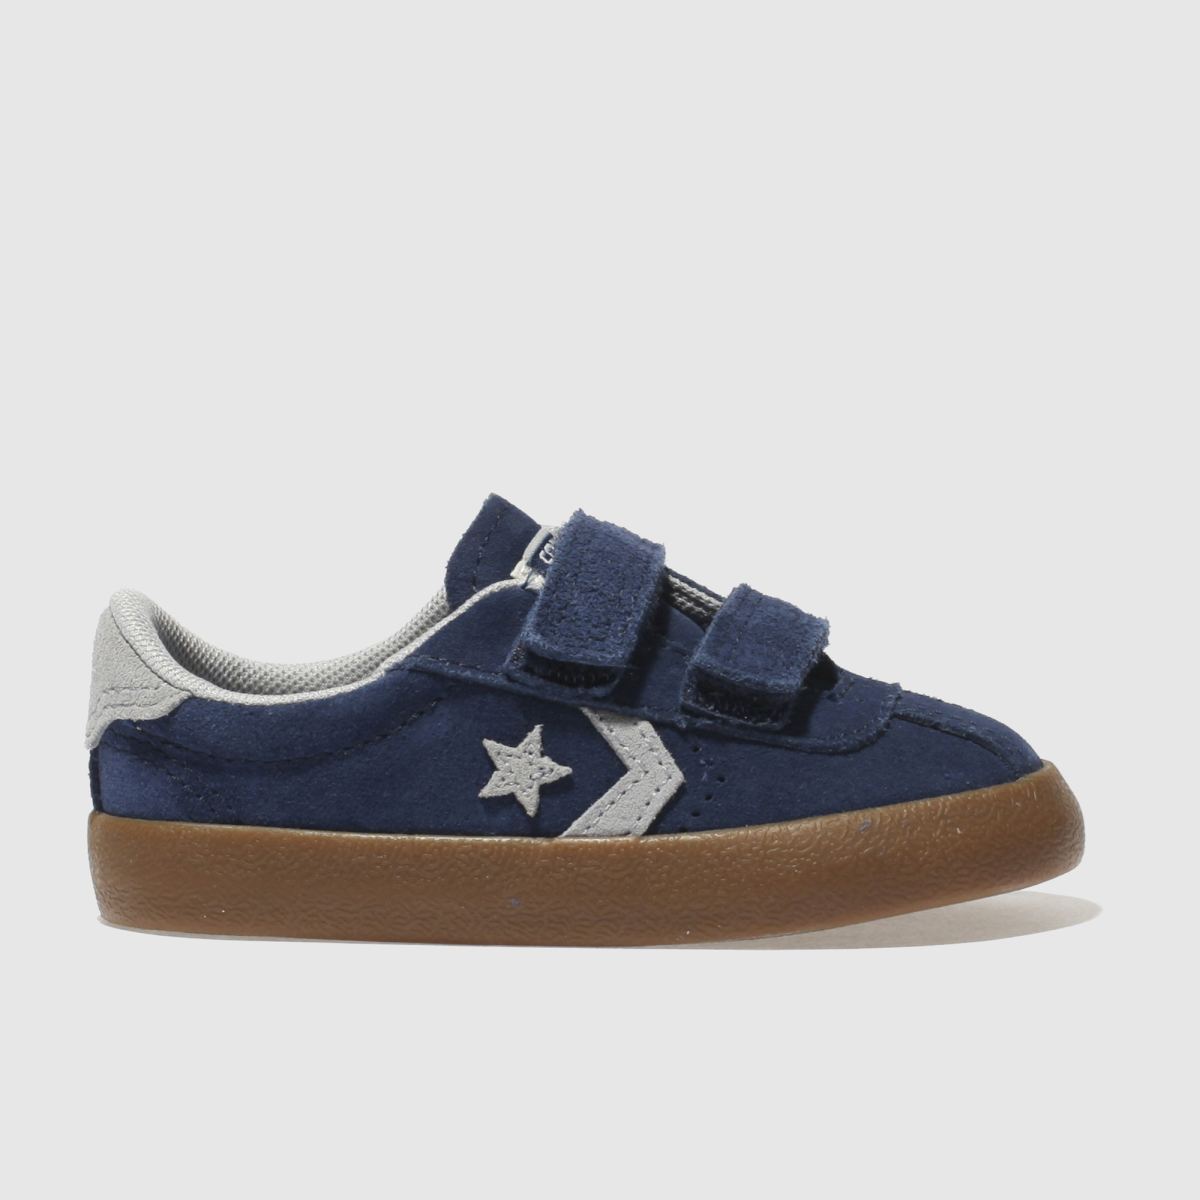 Converse Navy & Grey Breakpoint Ox Boys Toddler Toddler